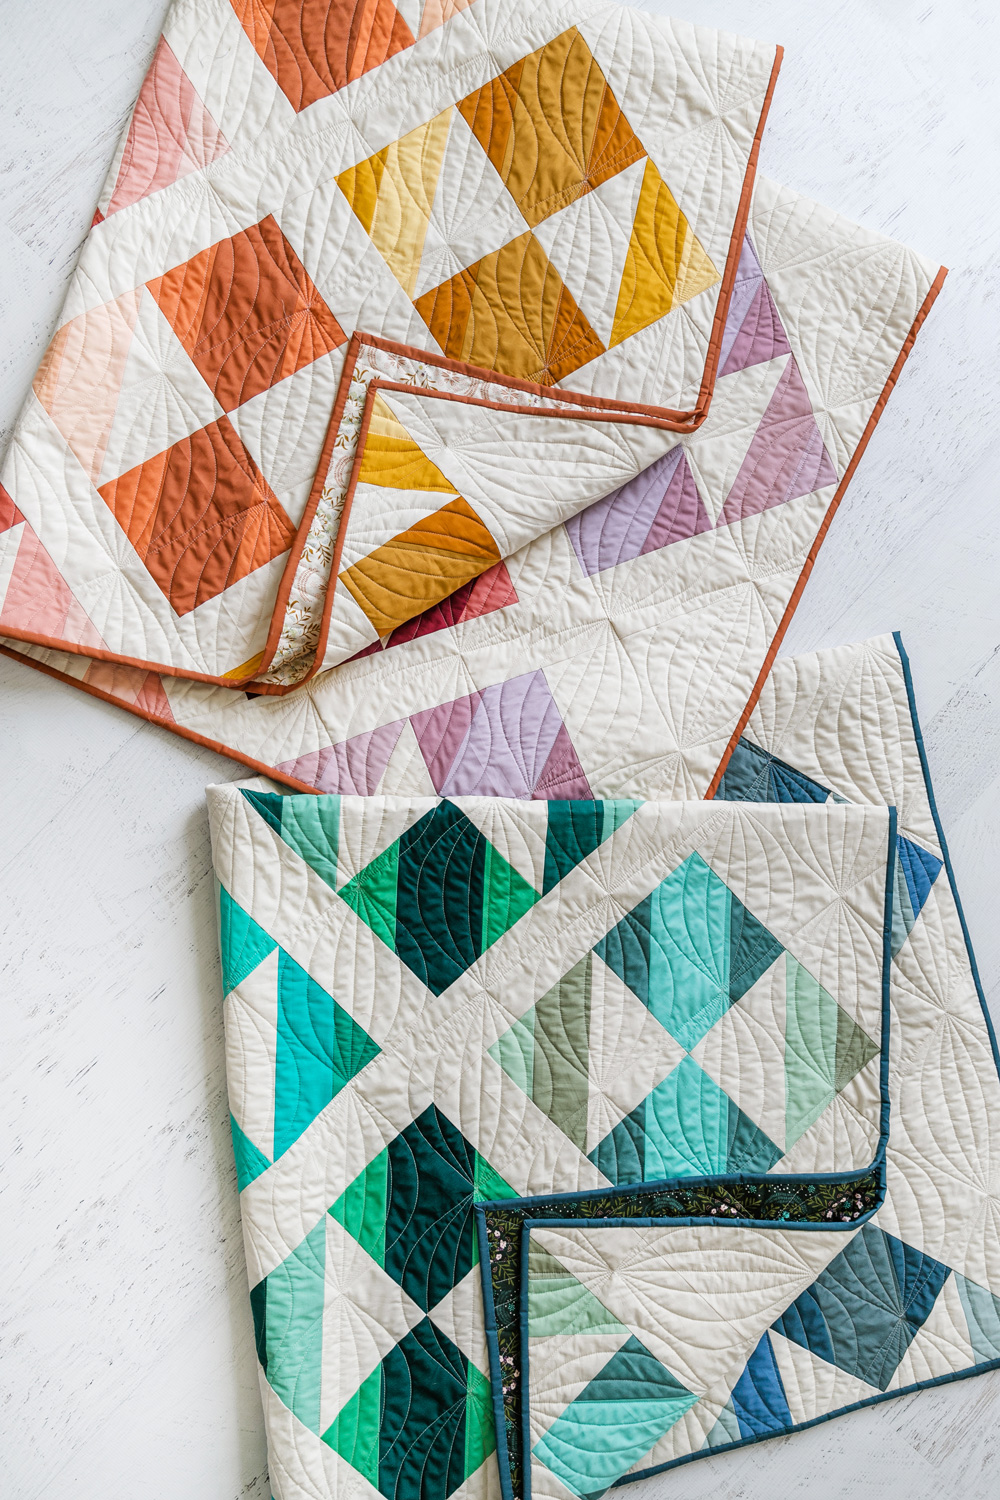 This modern ombre fat quarter quilt pattern is a good beginner quilt pattern and makes a beautiful scrap quilt. The sewing pattern also includes instructions for a limited-color version. suzyquilts.com #quiltpattern #modernquilt